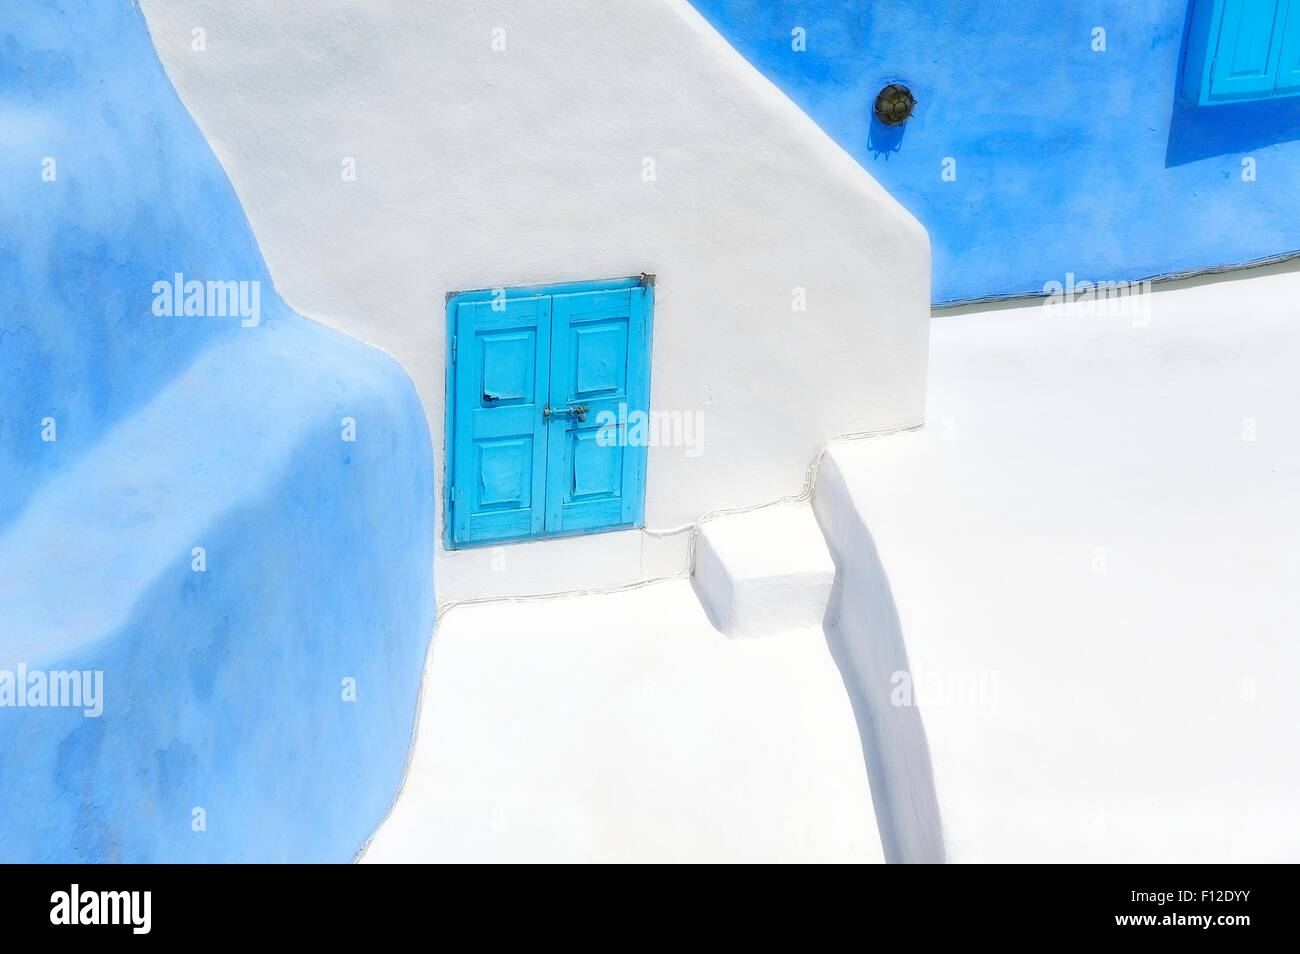 An abstract painted building with blue shuttered windows.Santorini Greece - Stock Image